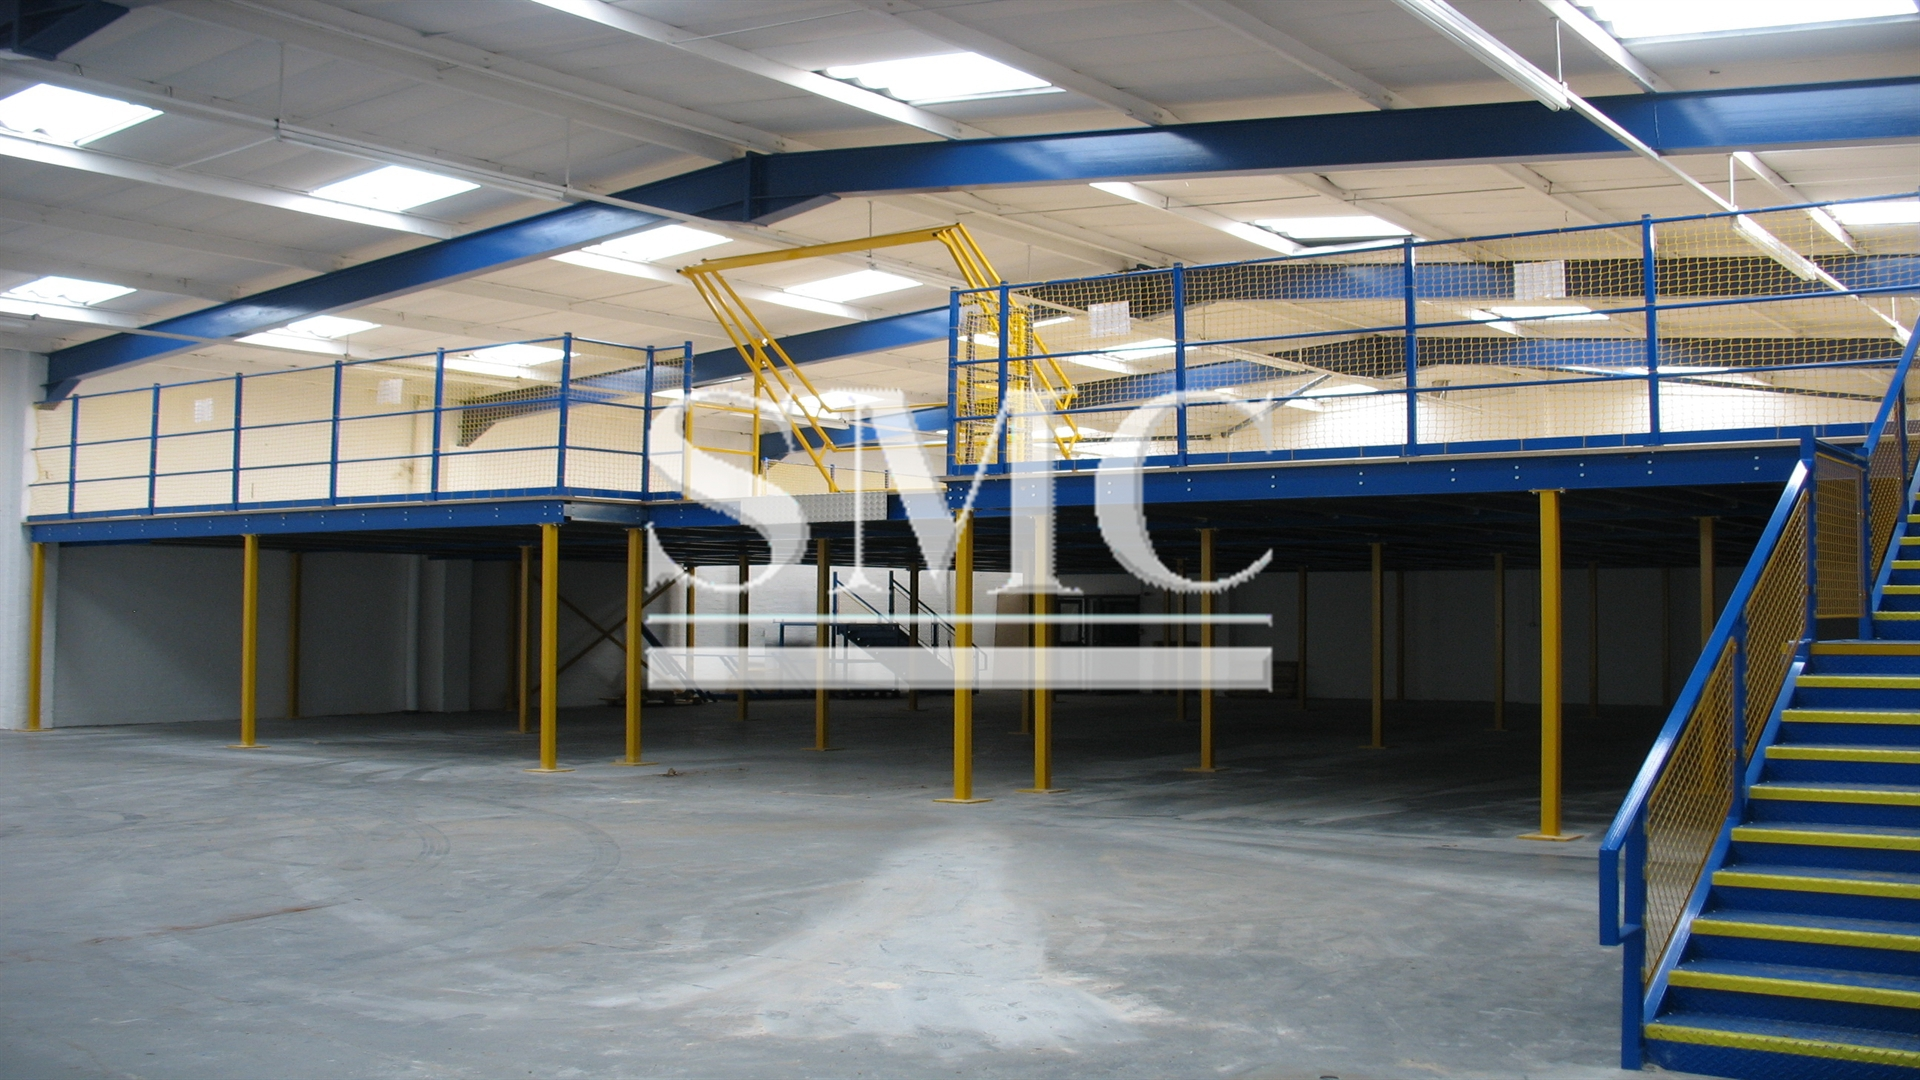 Are you actually aware of mezzanine floors and what are they used for?